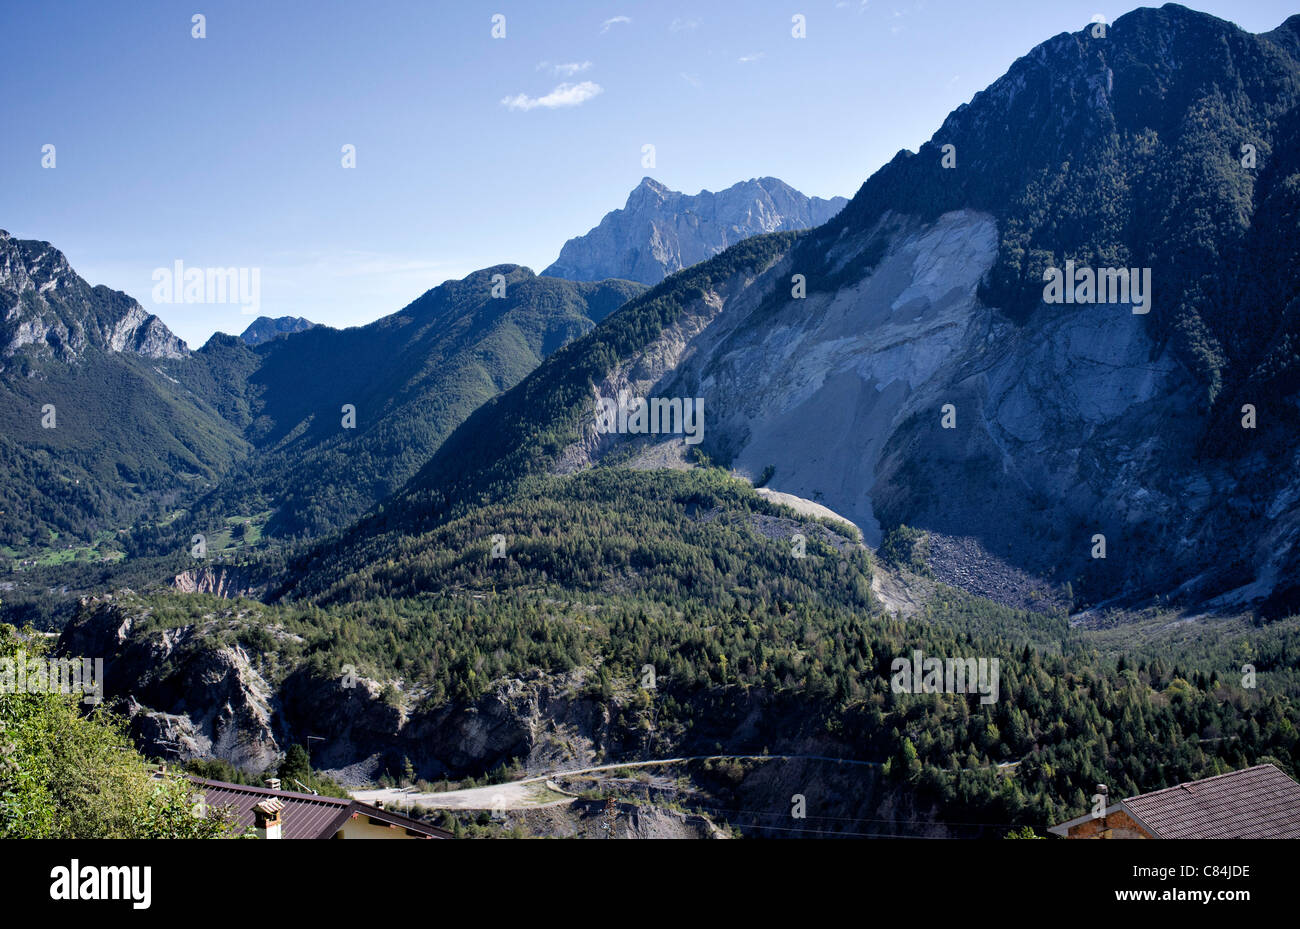 A genaral view of the Vajont dam, and Monte Toc VenetoItaly - Stock Image